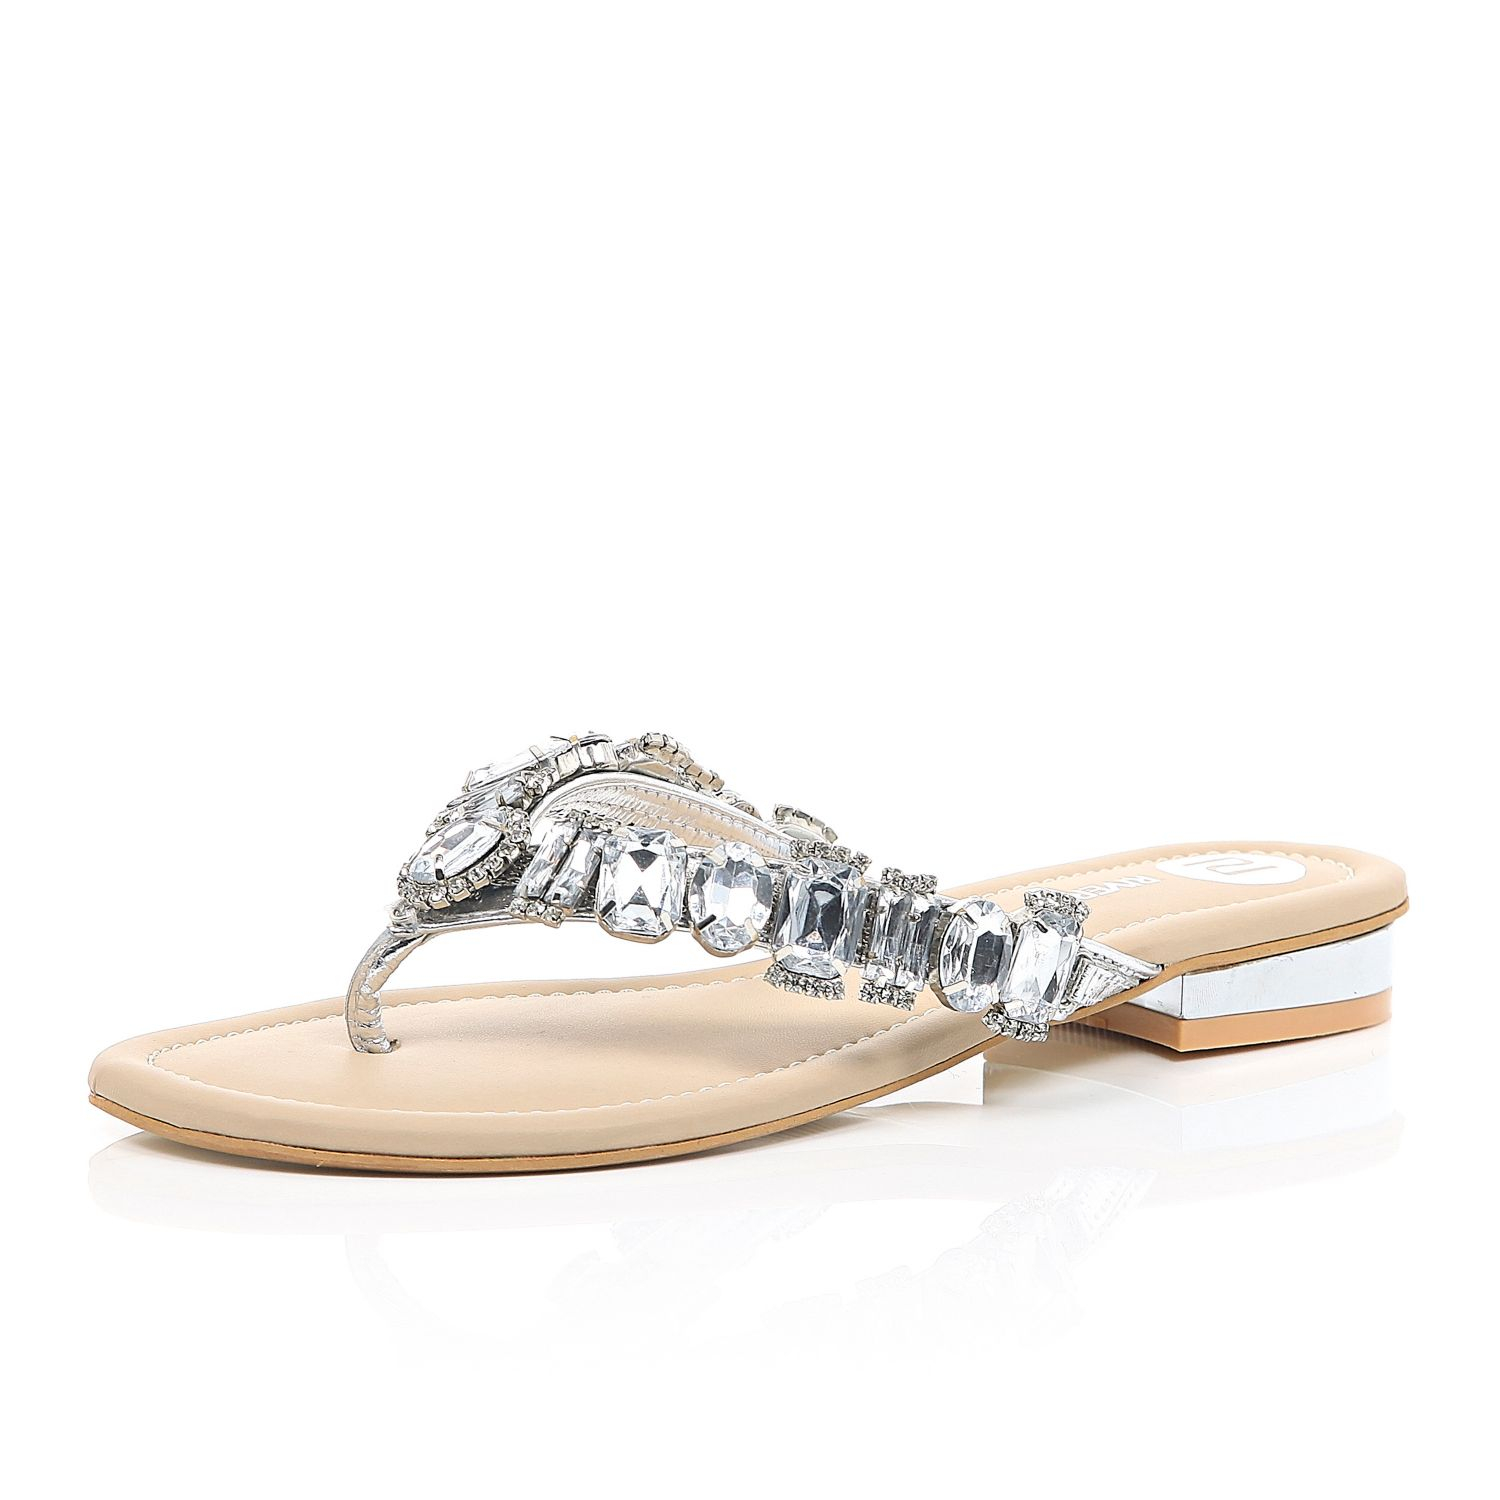 Silver Gemstone Embellished Sandals River Island